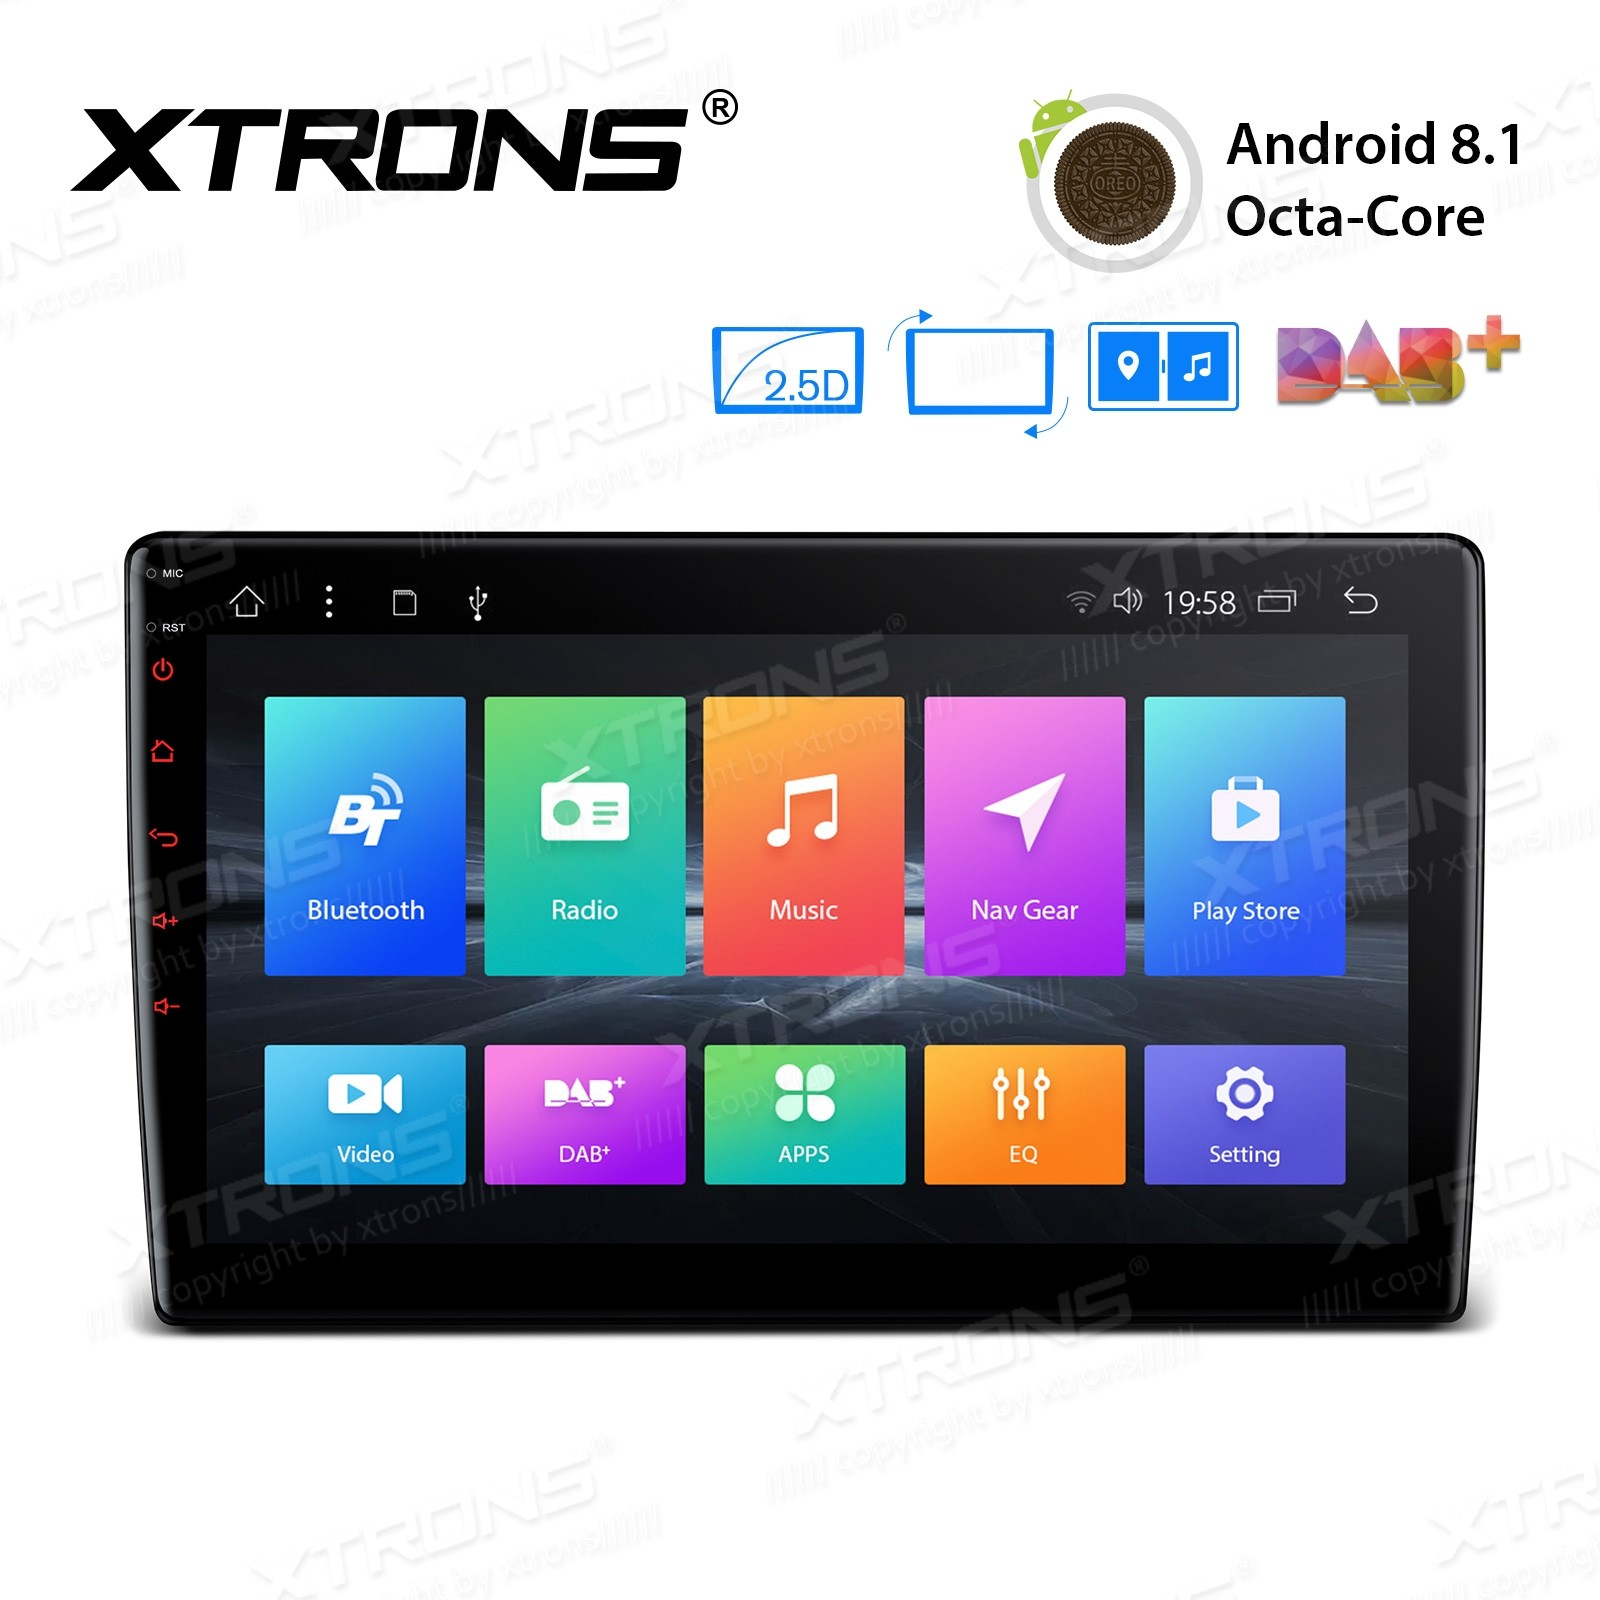 """10.1"""" Android 8.1 Octa-Core 32GB ROM + 2GB DDR3 RAM Rotatable Face Panel 2.5D Curved Screen Car Stereo"""